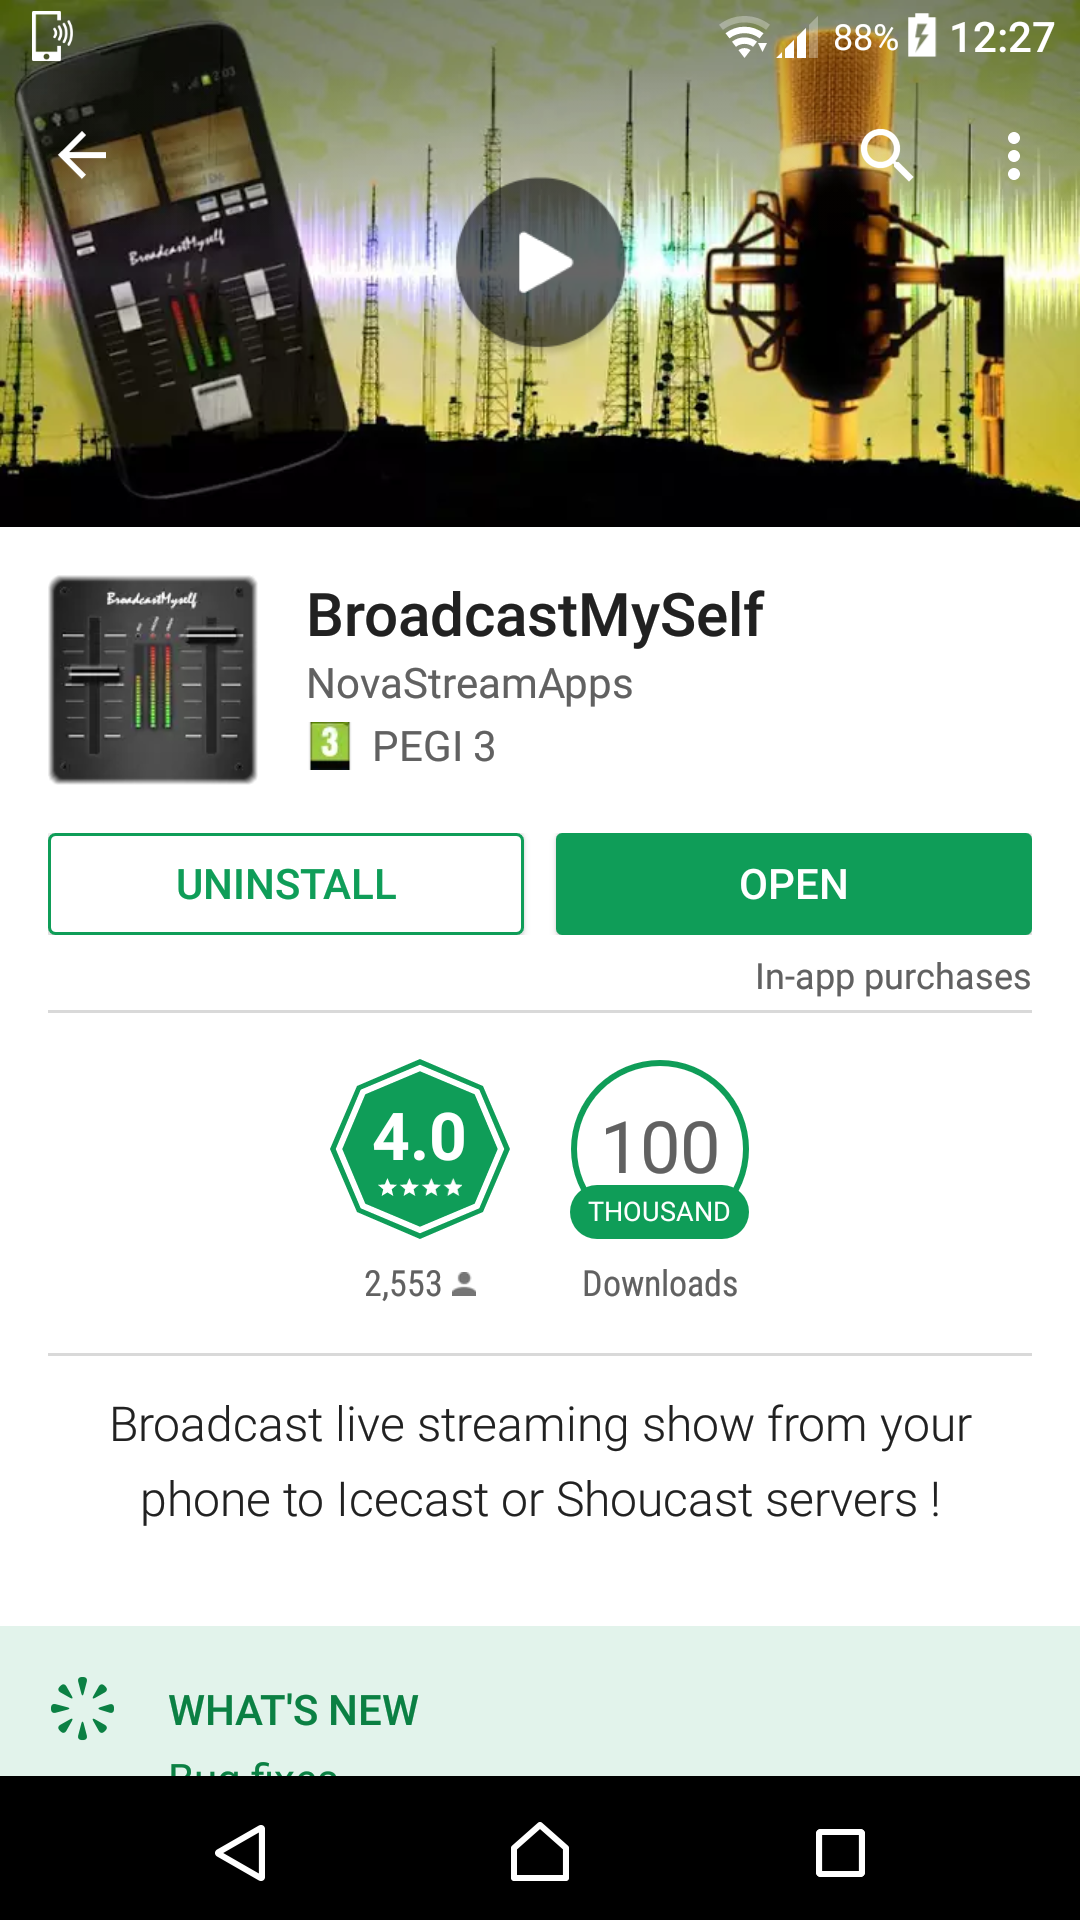 BroadcastMySelf - Google Play